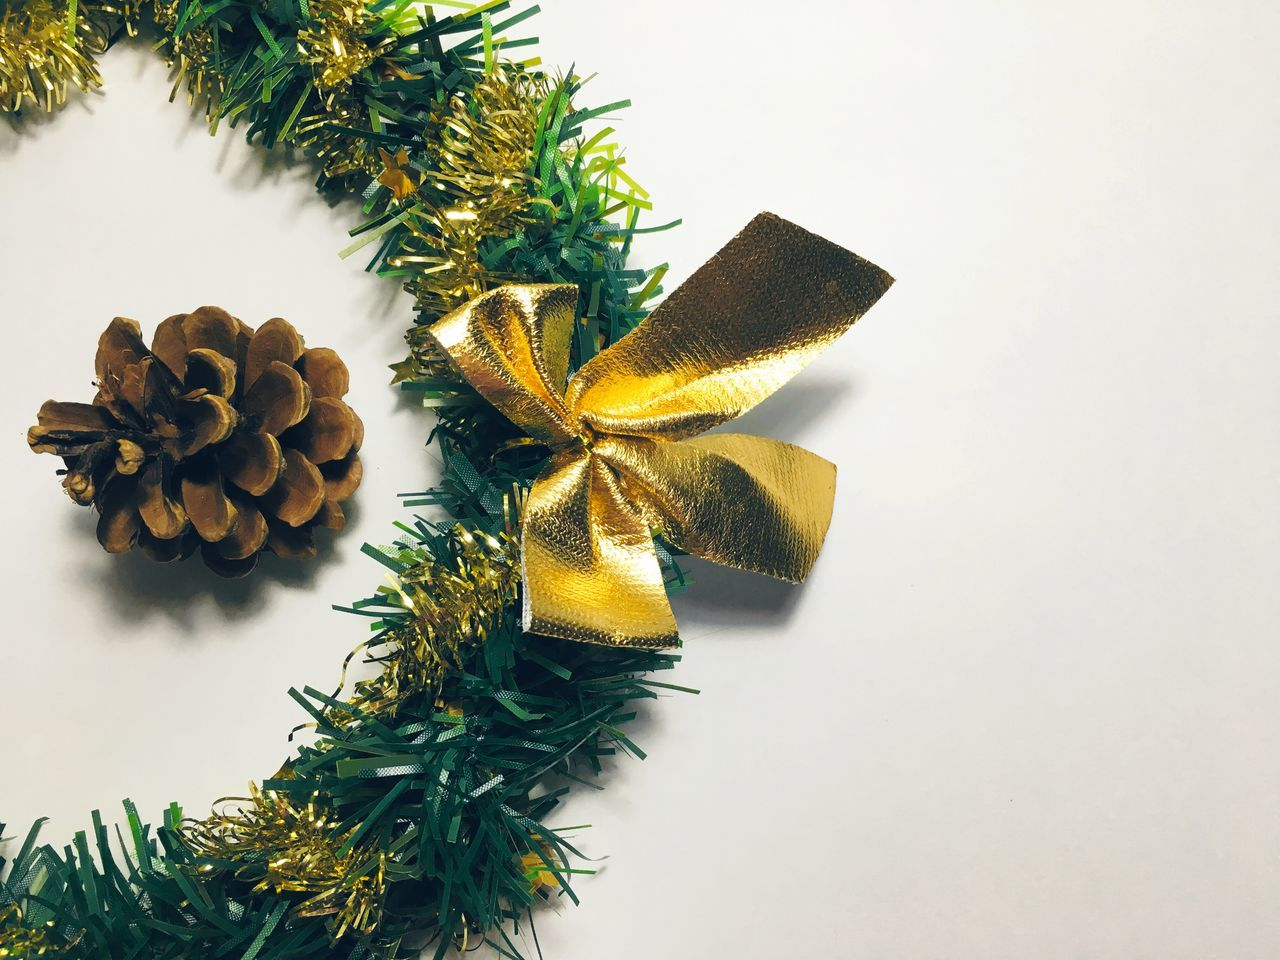 Close-Up Of Christmas Wreath And Pine Cone On Table